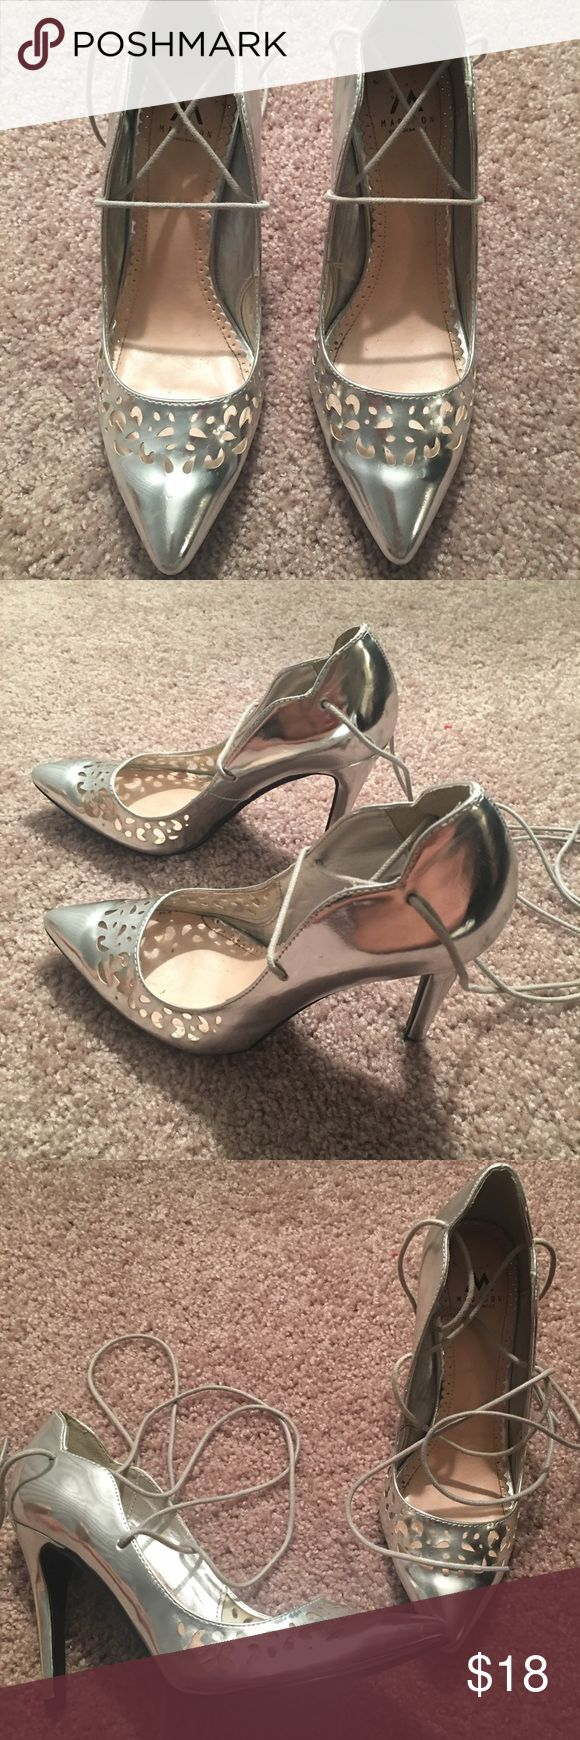 Shoe dazzle silver metallic laser cut pumps Lace up metallic laser cut pumps from shoedazzle. Shoe Dazzle Shoes Heels